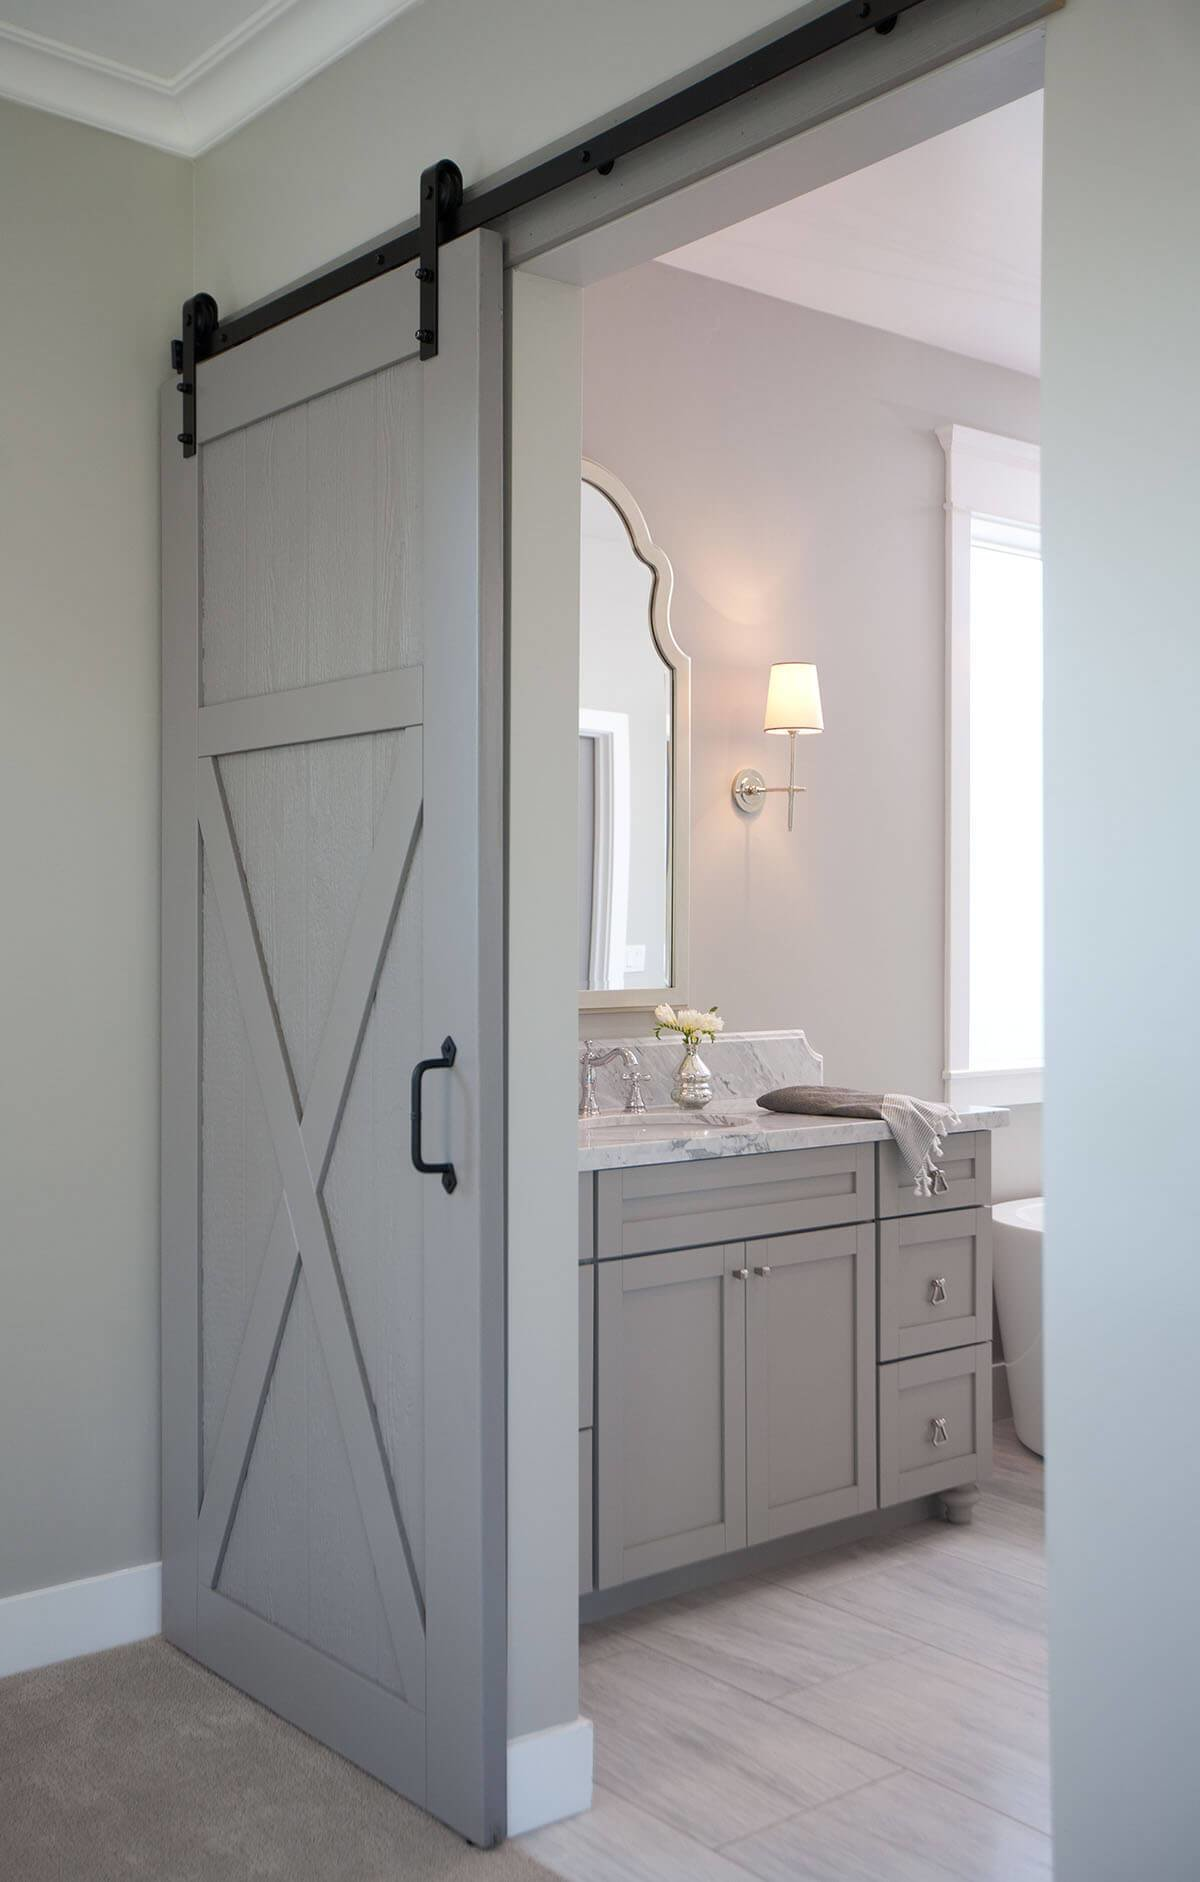 Best 29 Best Sliding Barn Door Ideas And Designs For 2019 With Pictures